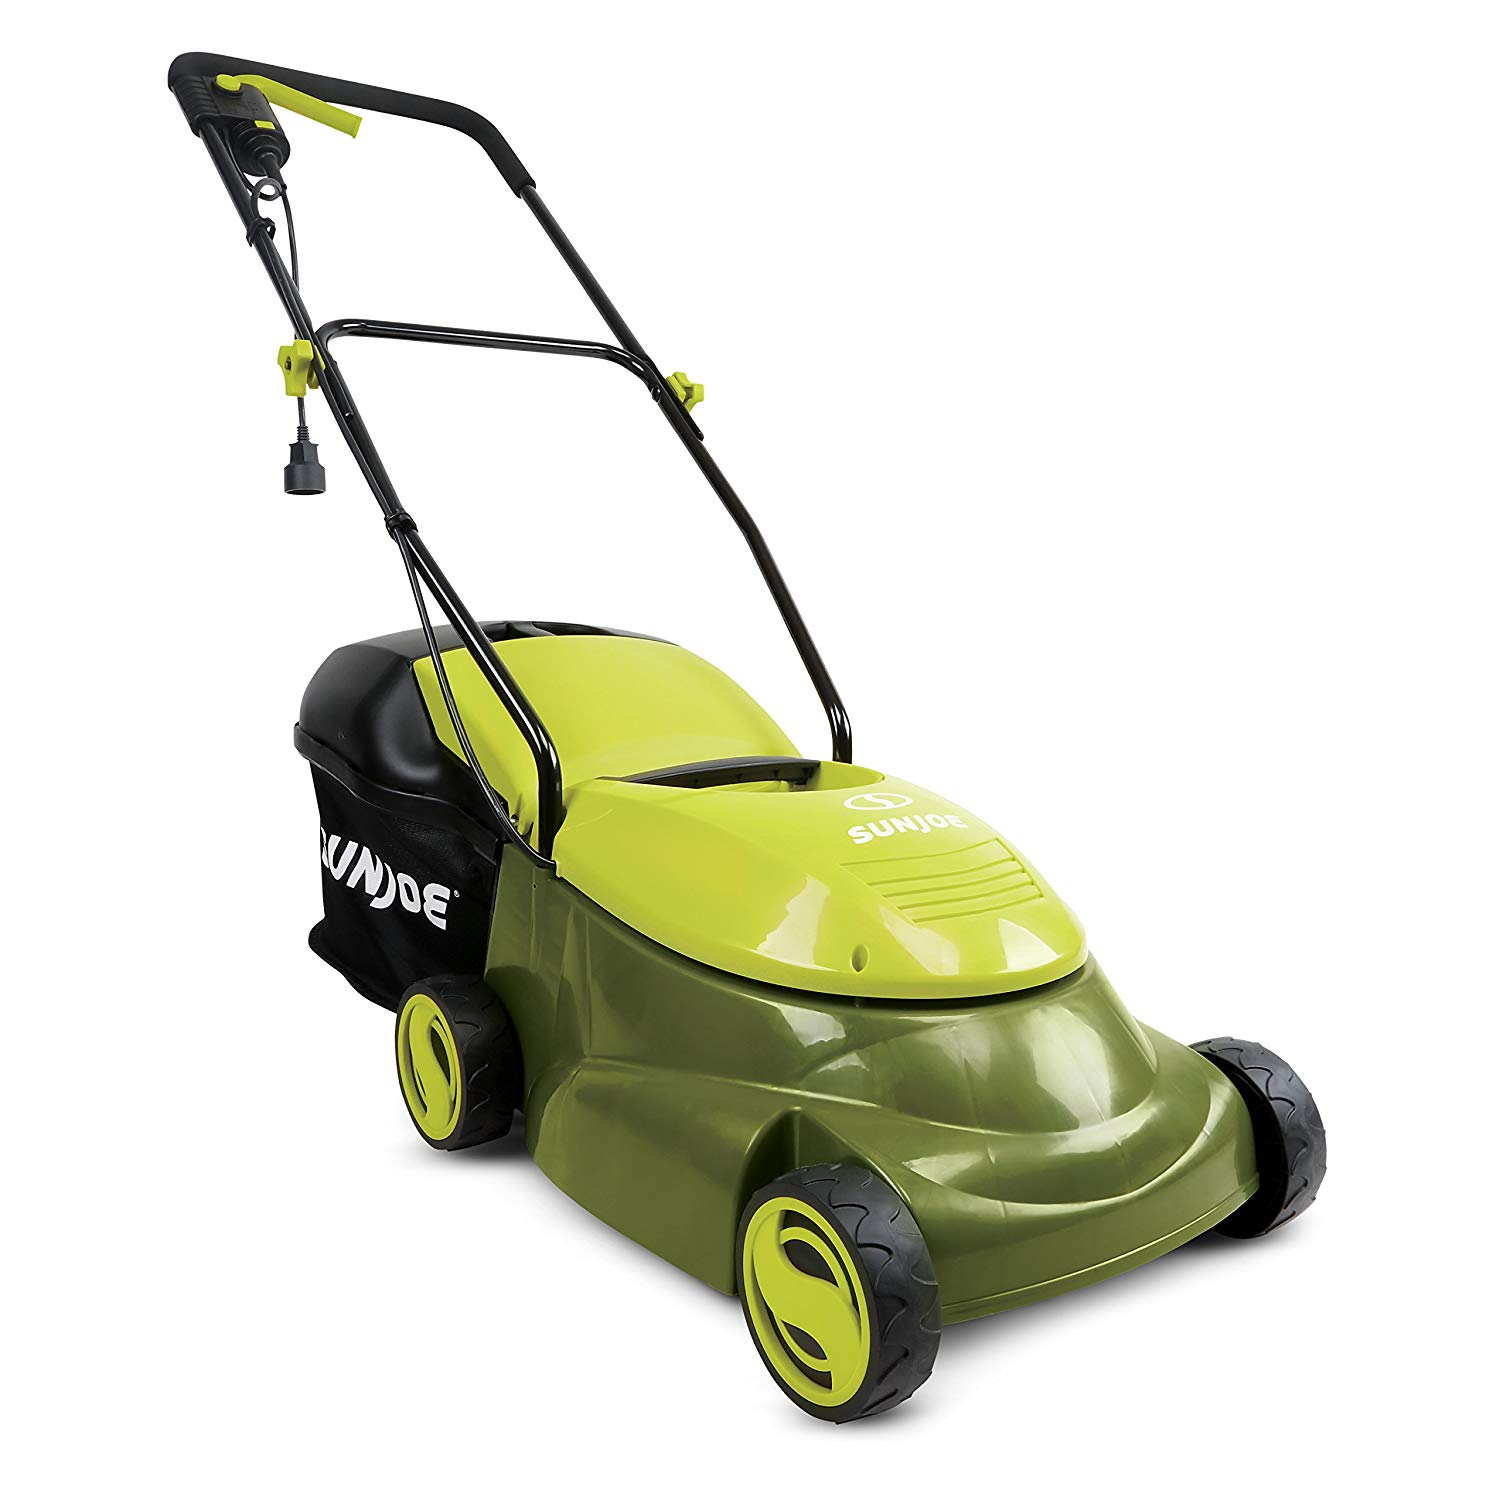 13 Amp Electric Lawn Mower with Side Discharge Chute By Sun Joe